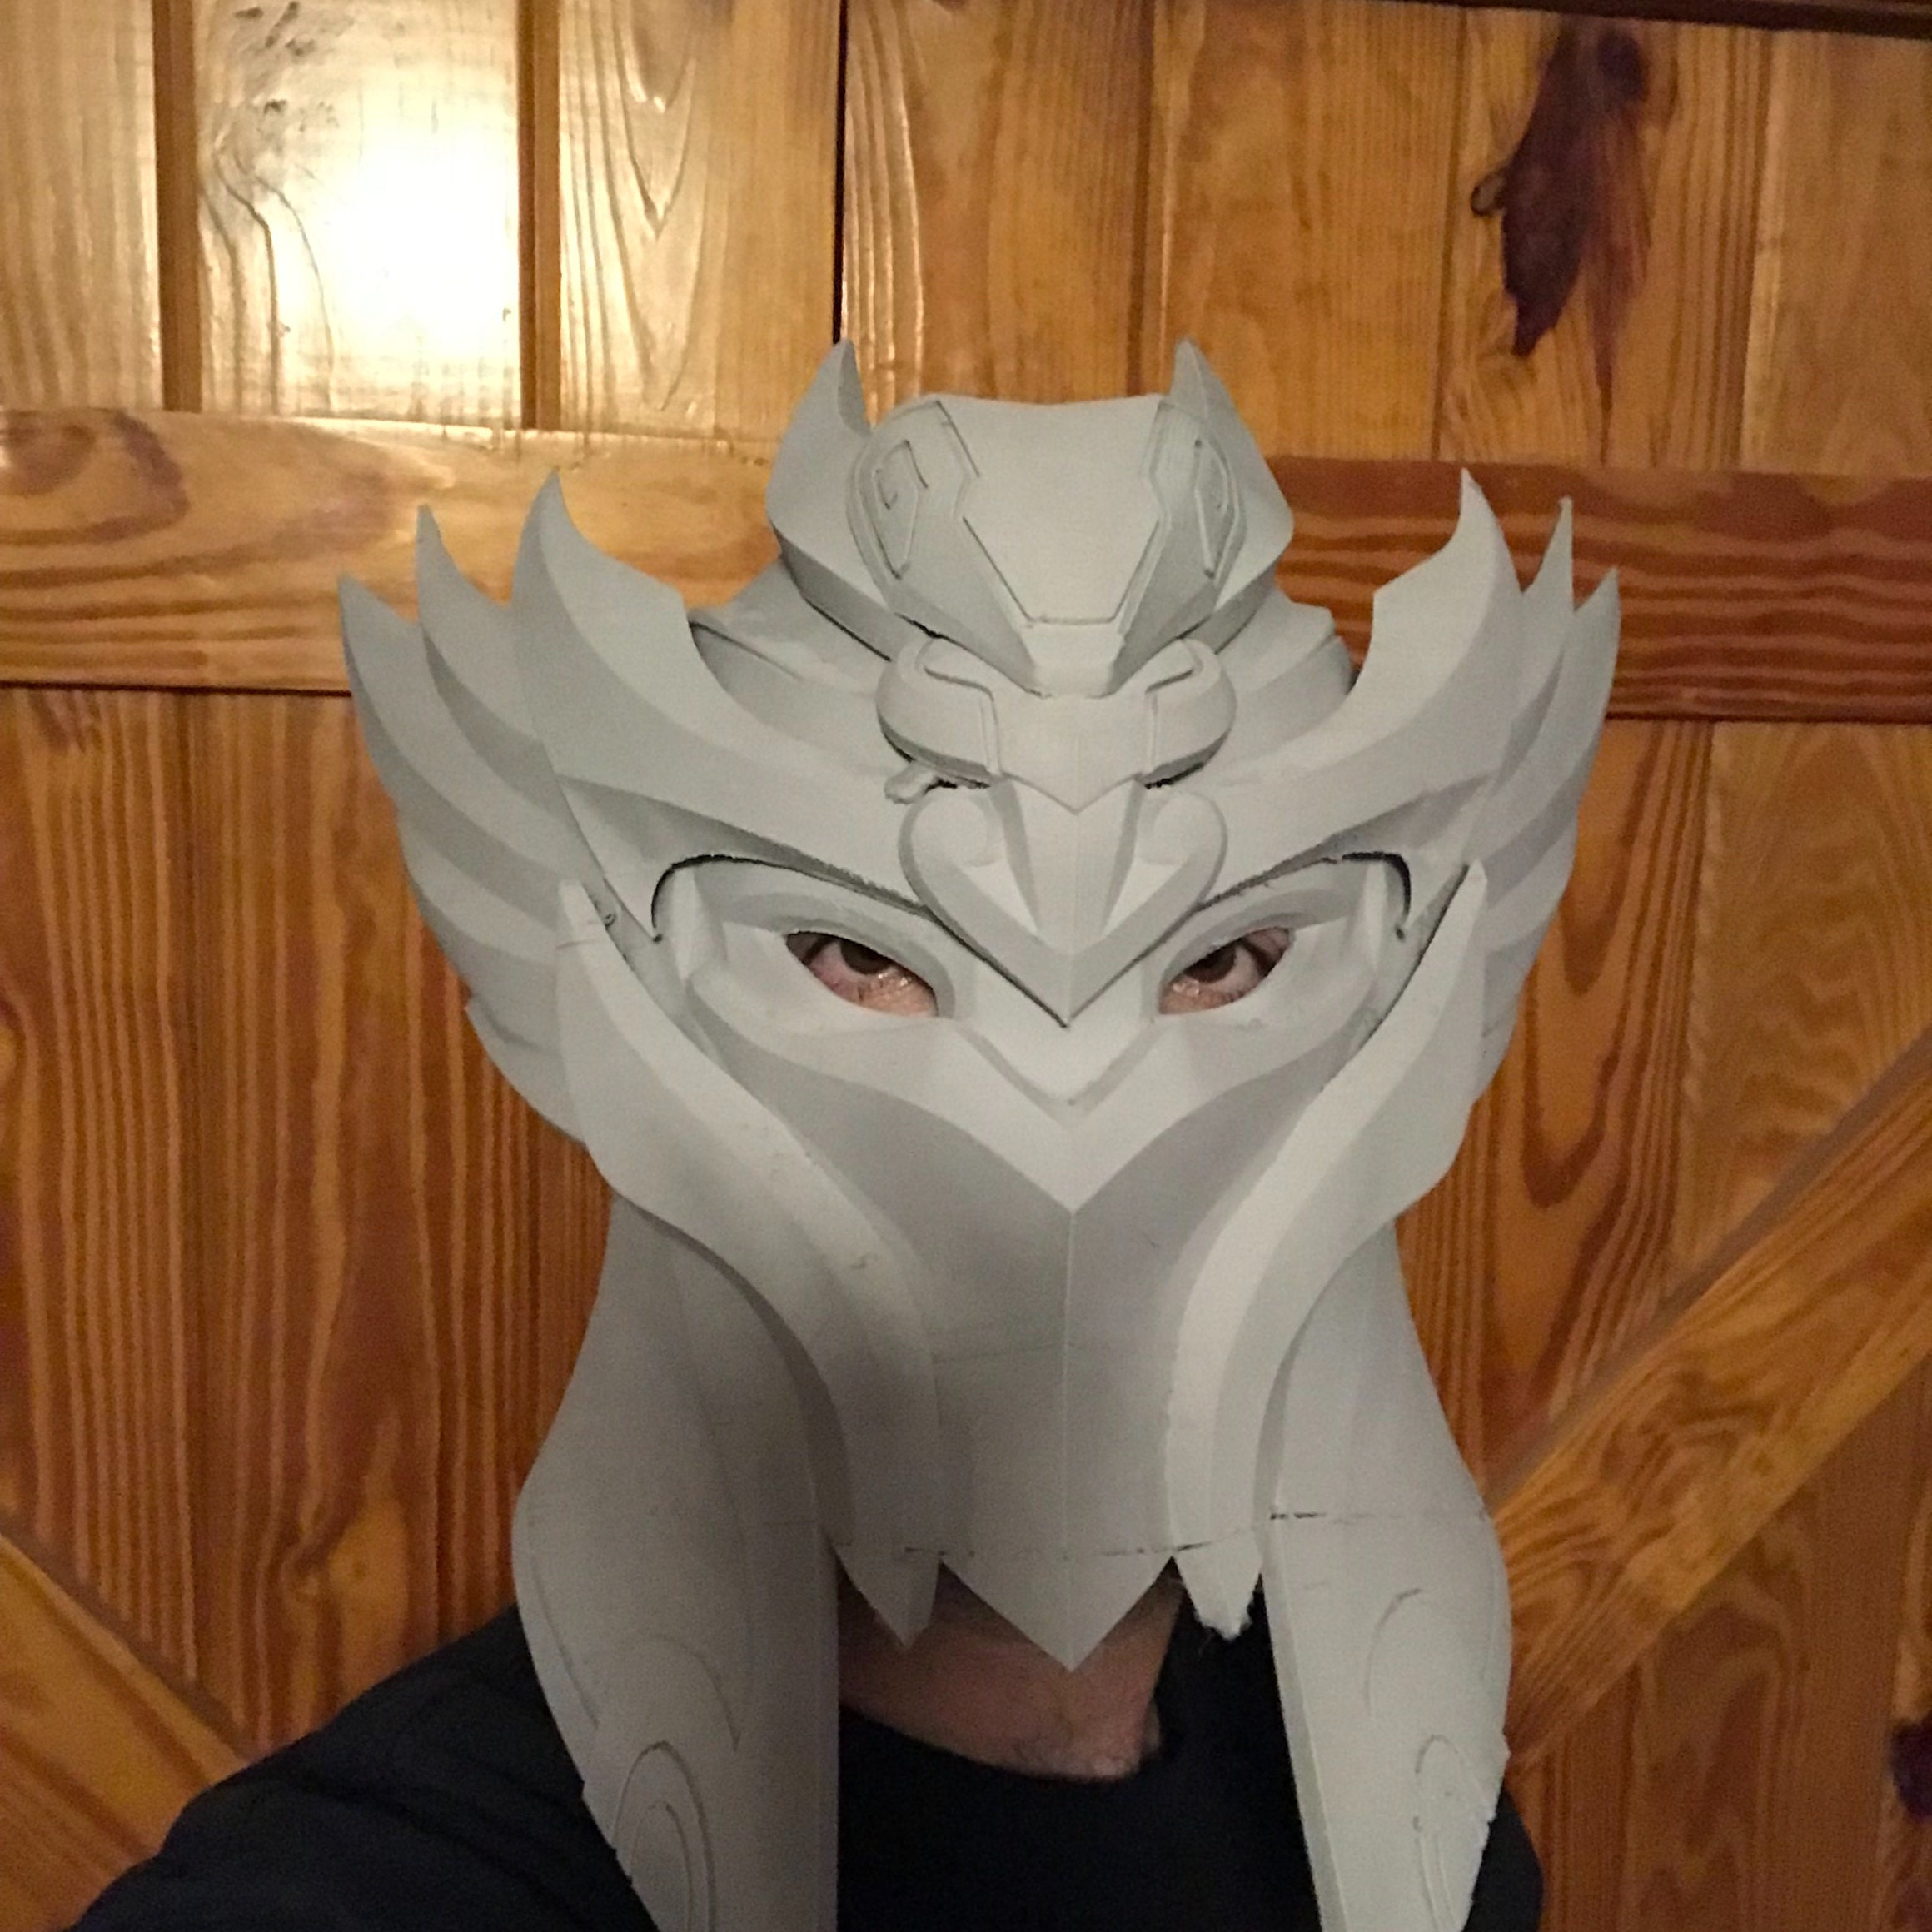 Staggz Cosplay added a photo of their purchase